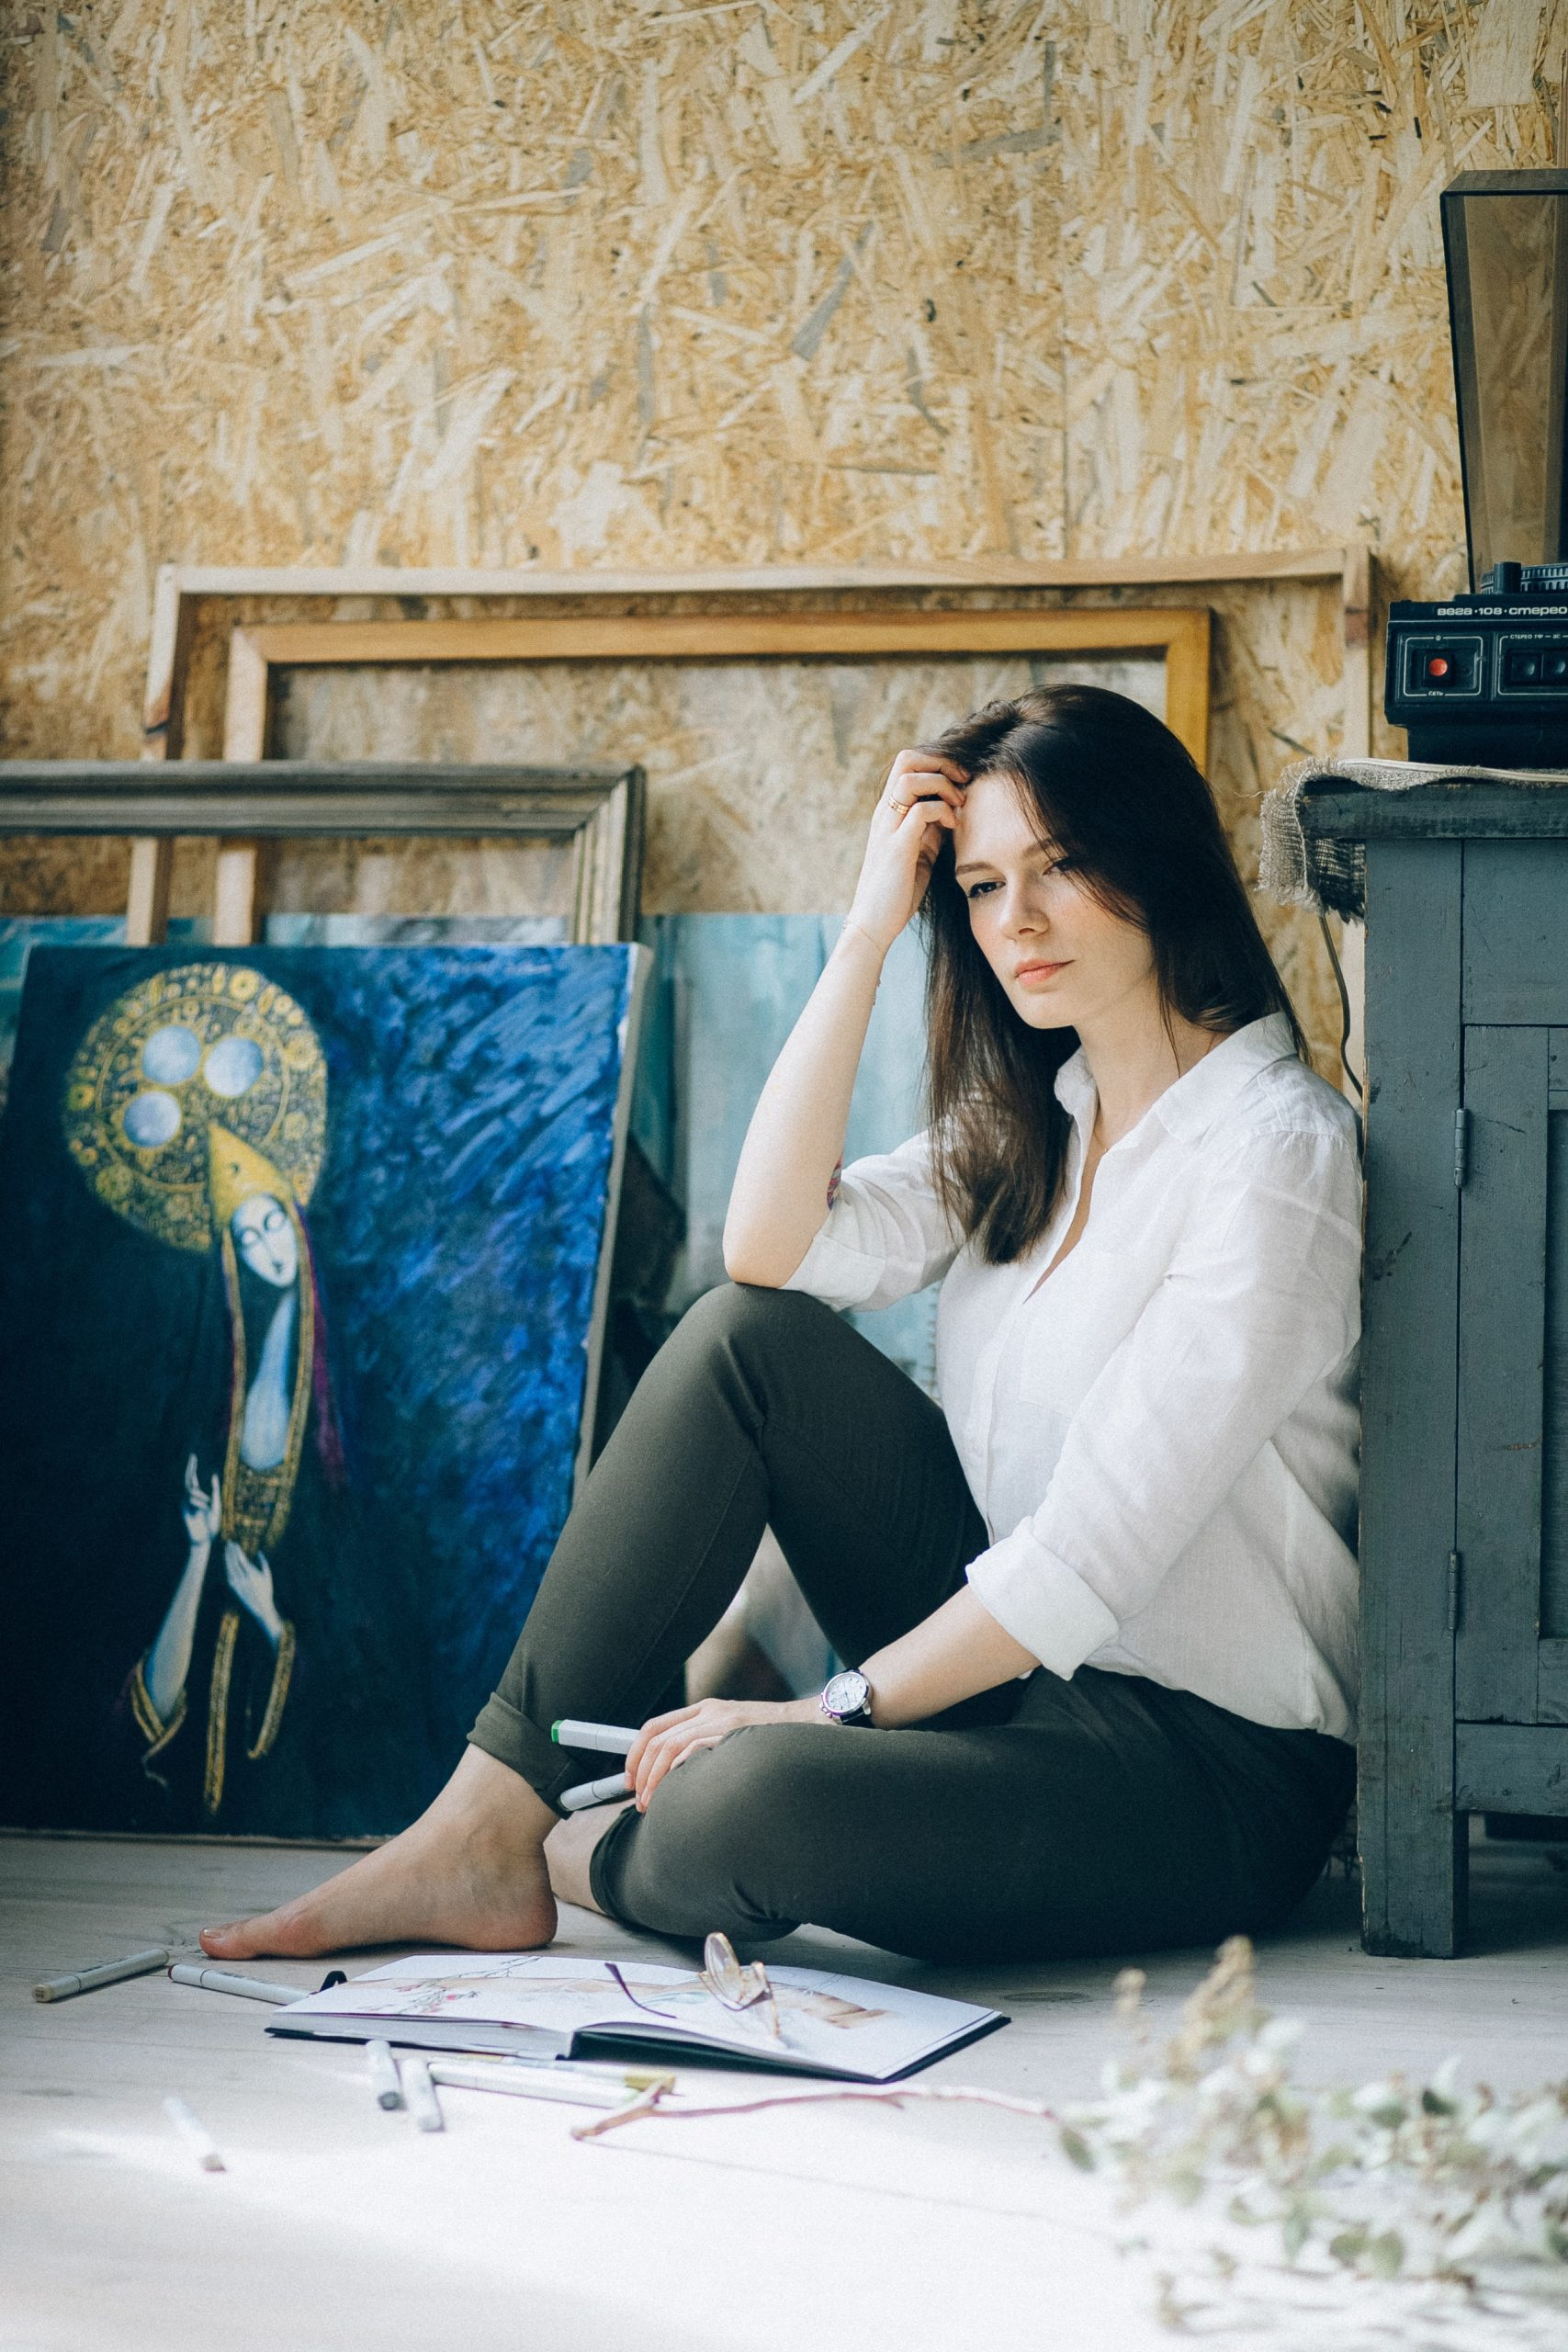 Woman with art relfecting